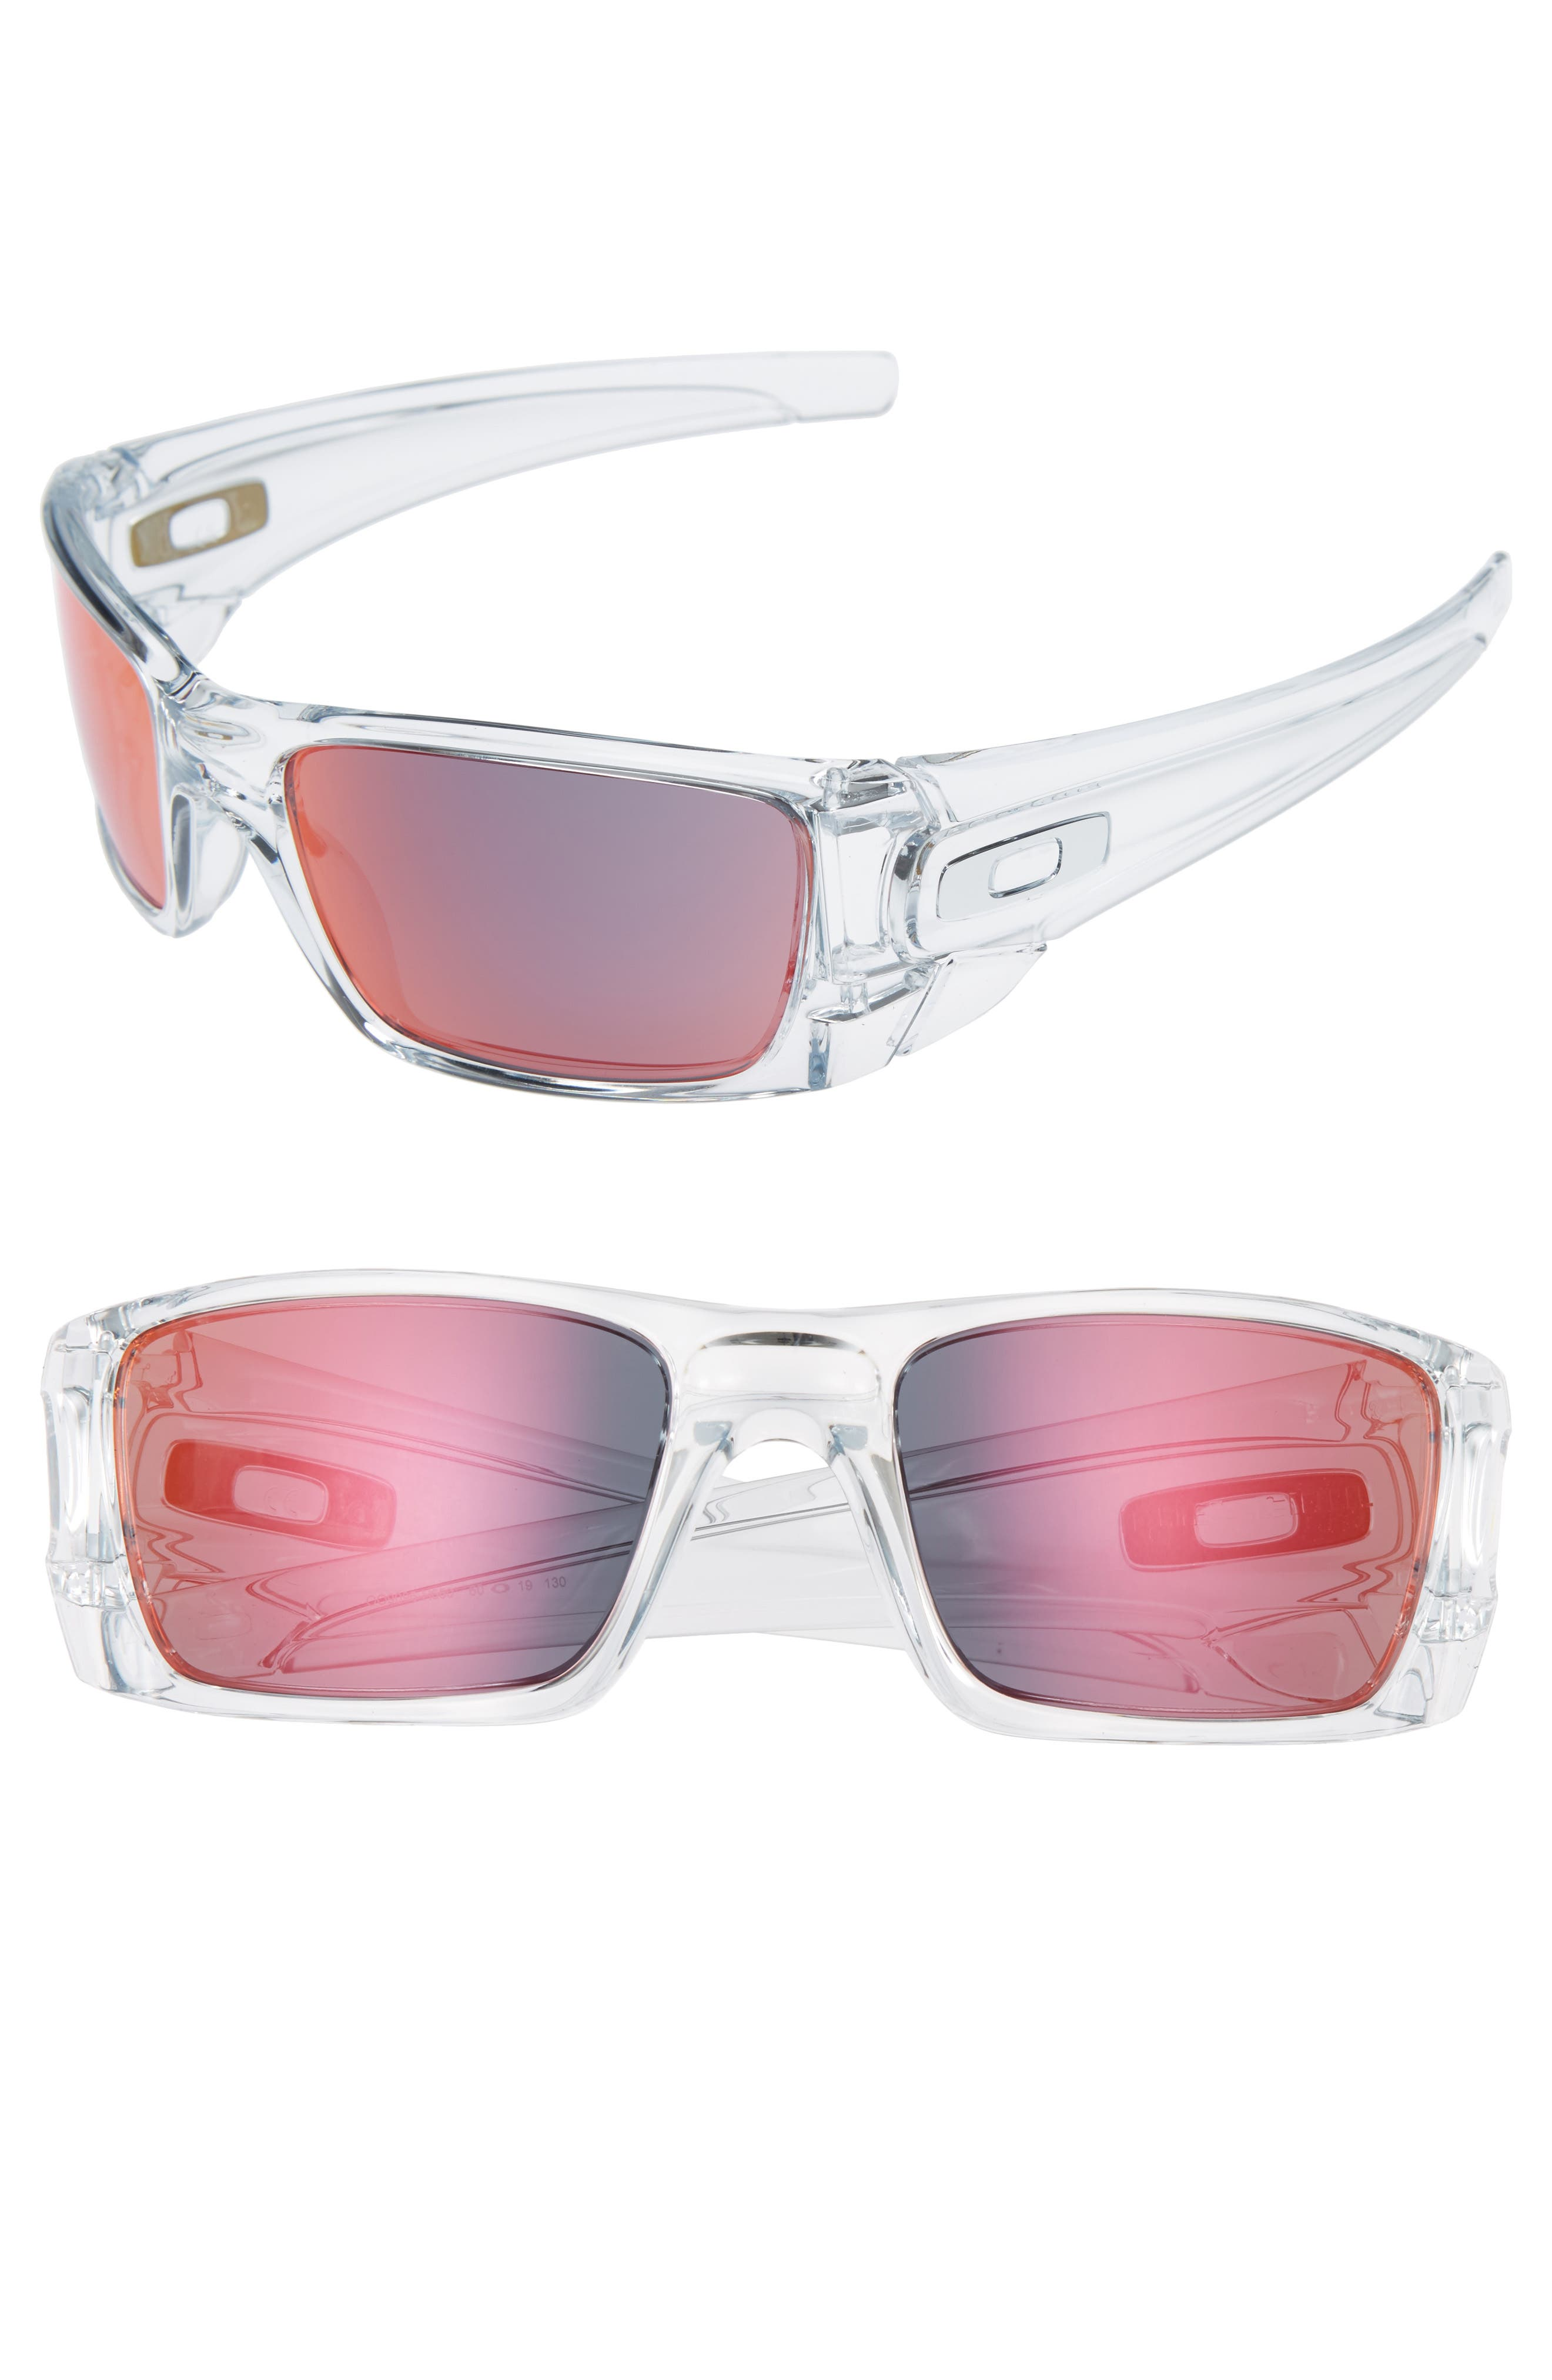 Fuel Cell 60mm Sunglasses,                             Main thumbnail 1, color,                             CLEAR